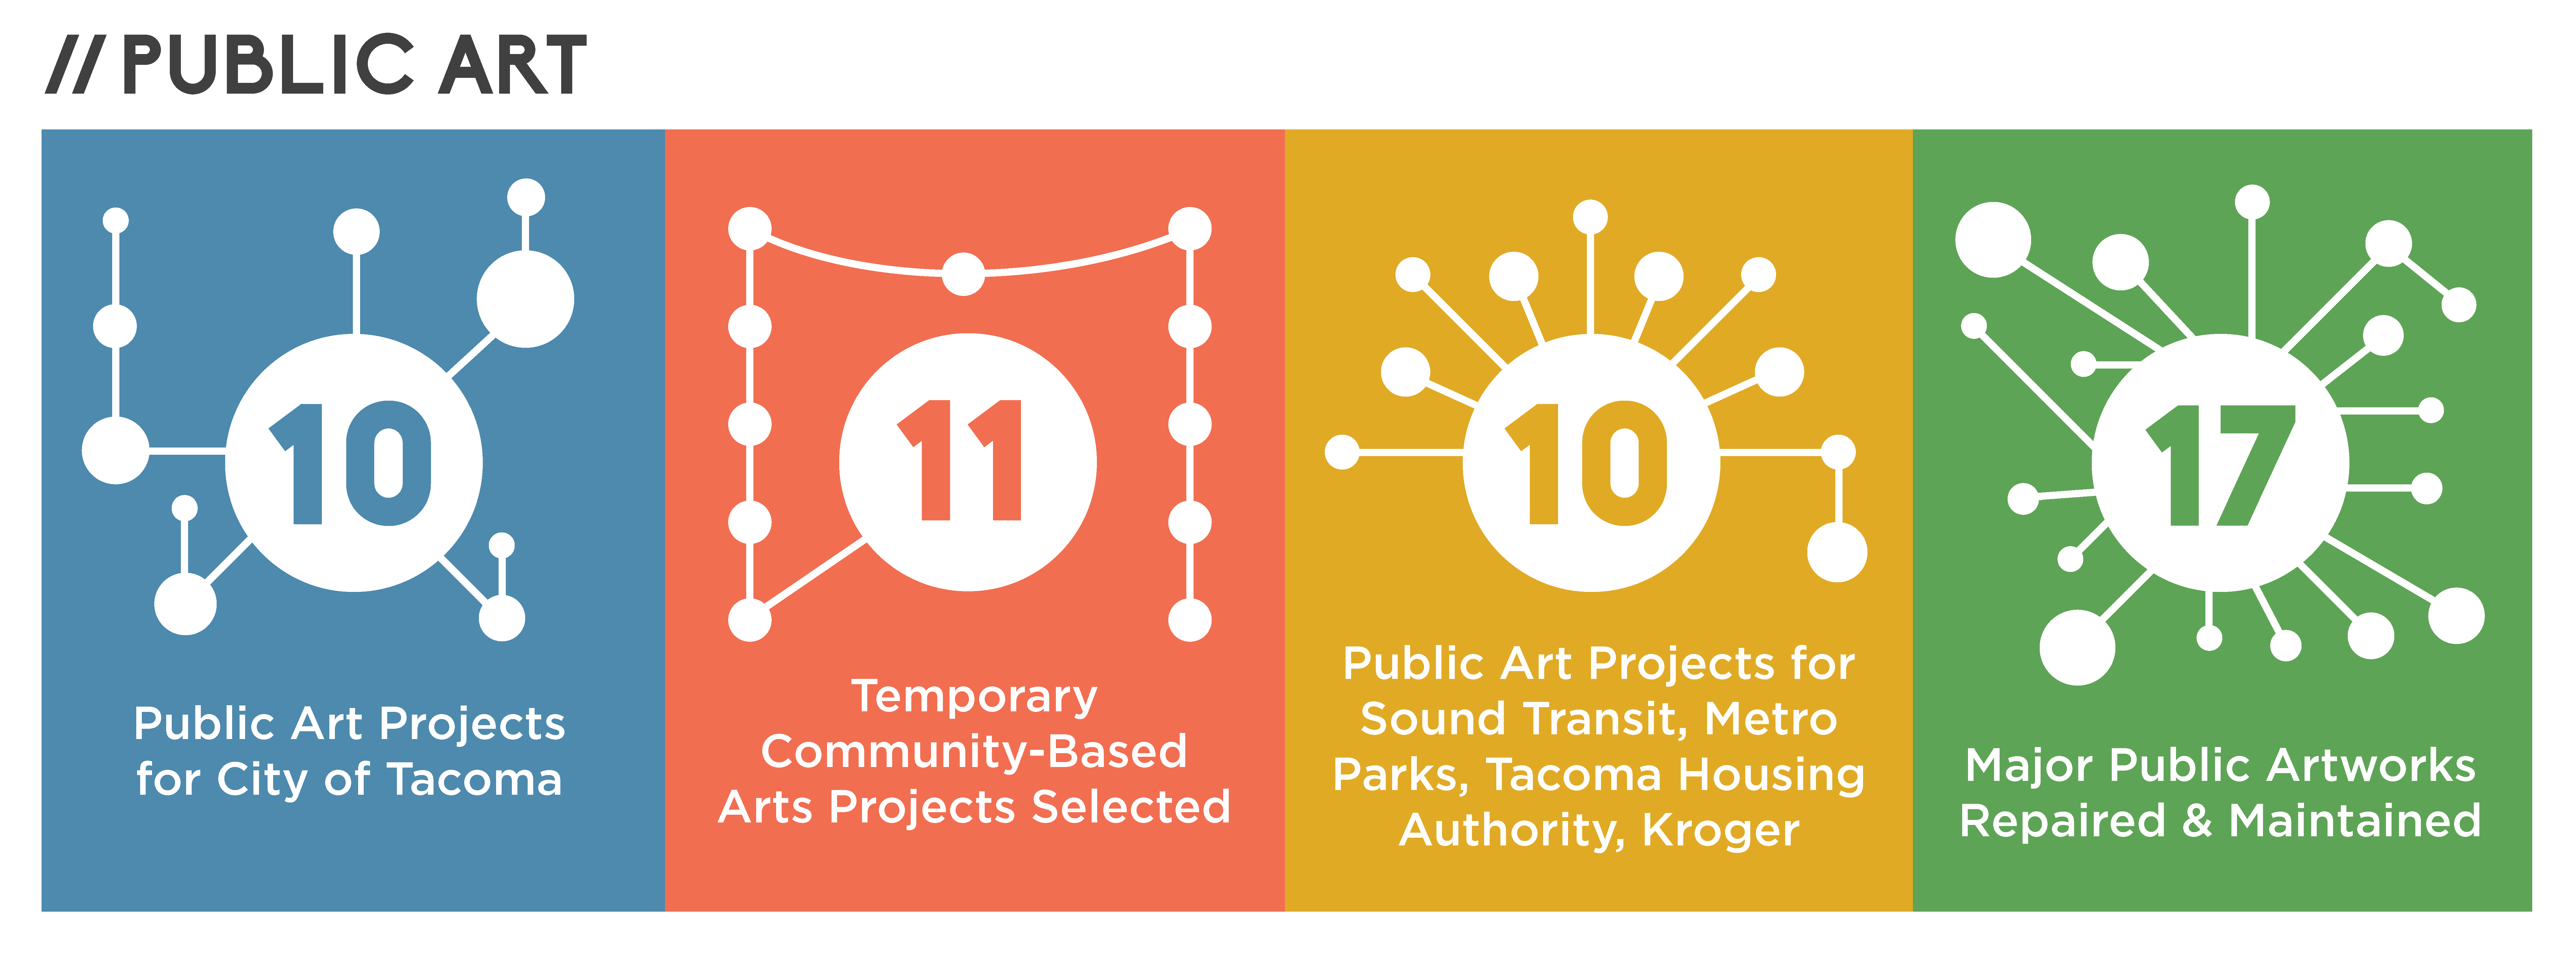 Tacoma Arts Commission 2016 public art overview